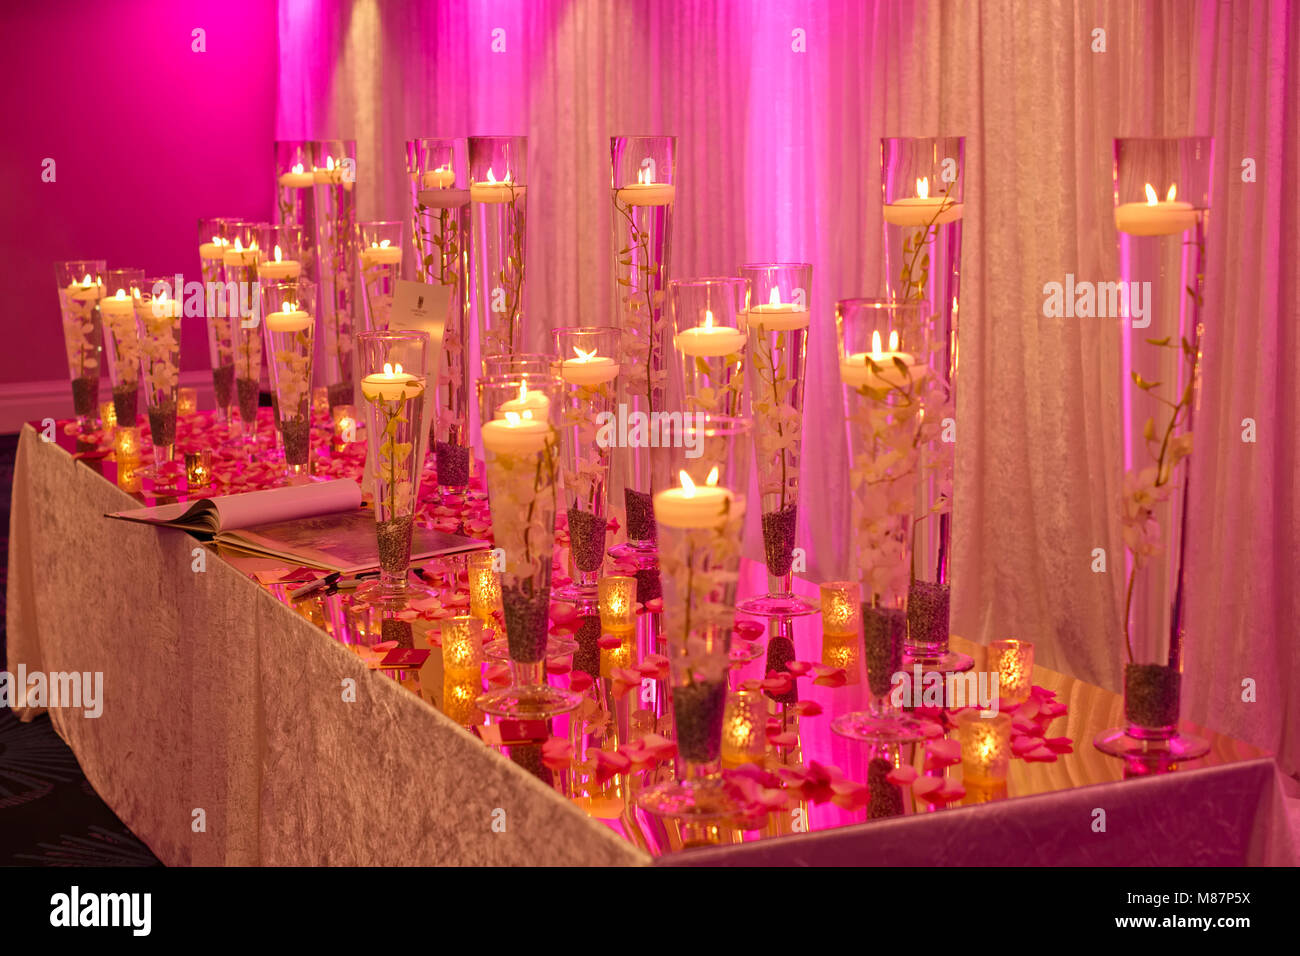 Table With Wedding Album And Display Of Floating Candles Stock Photo